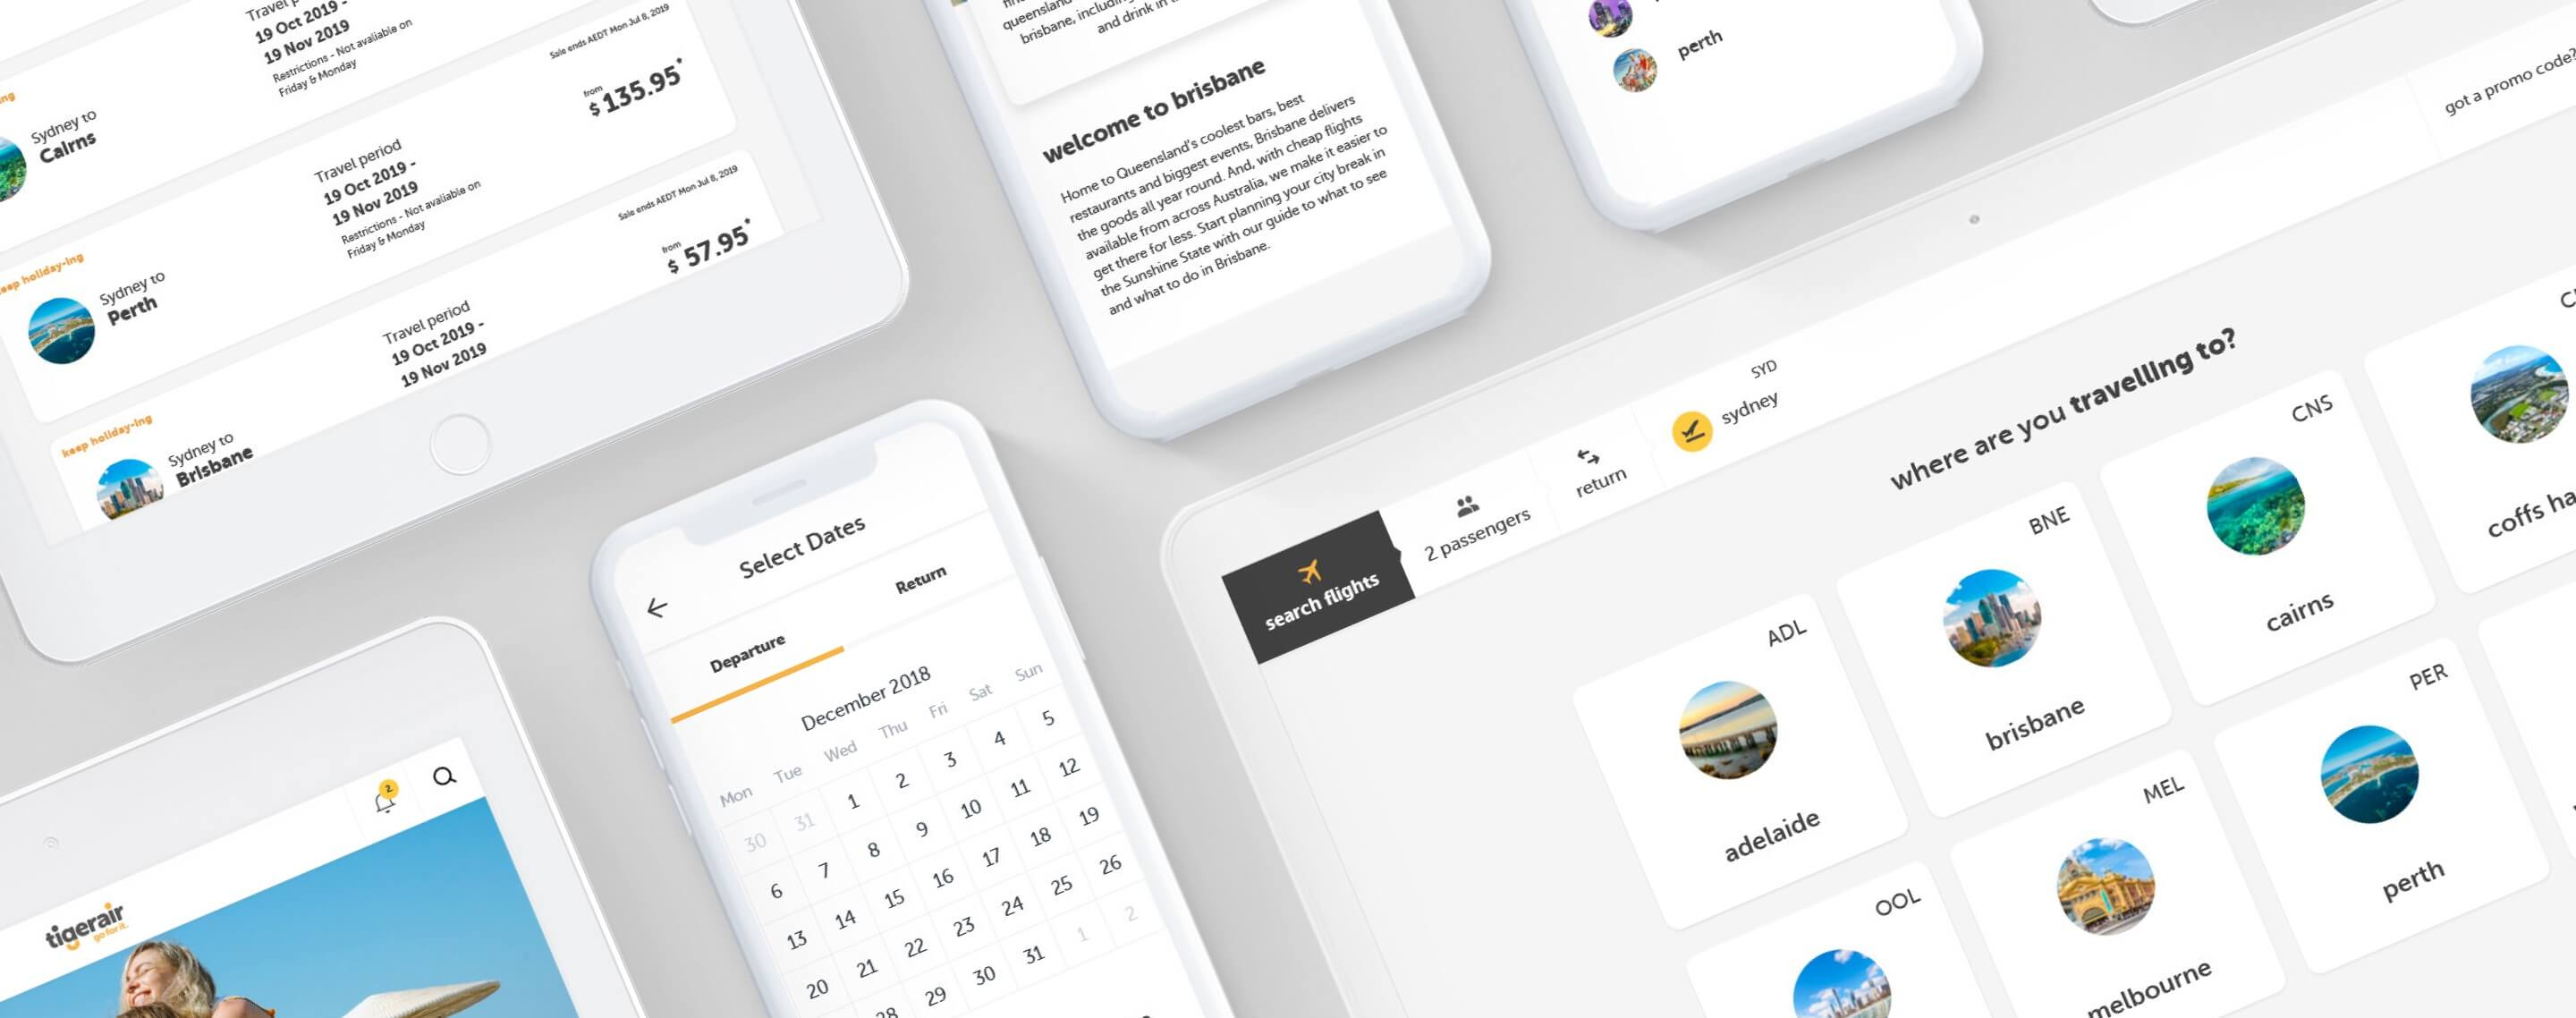 Multiple Devices showcasing Tigerair's new website design